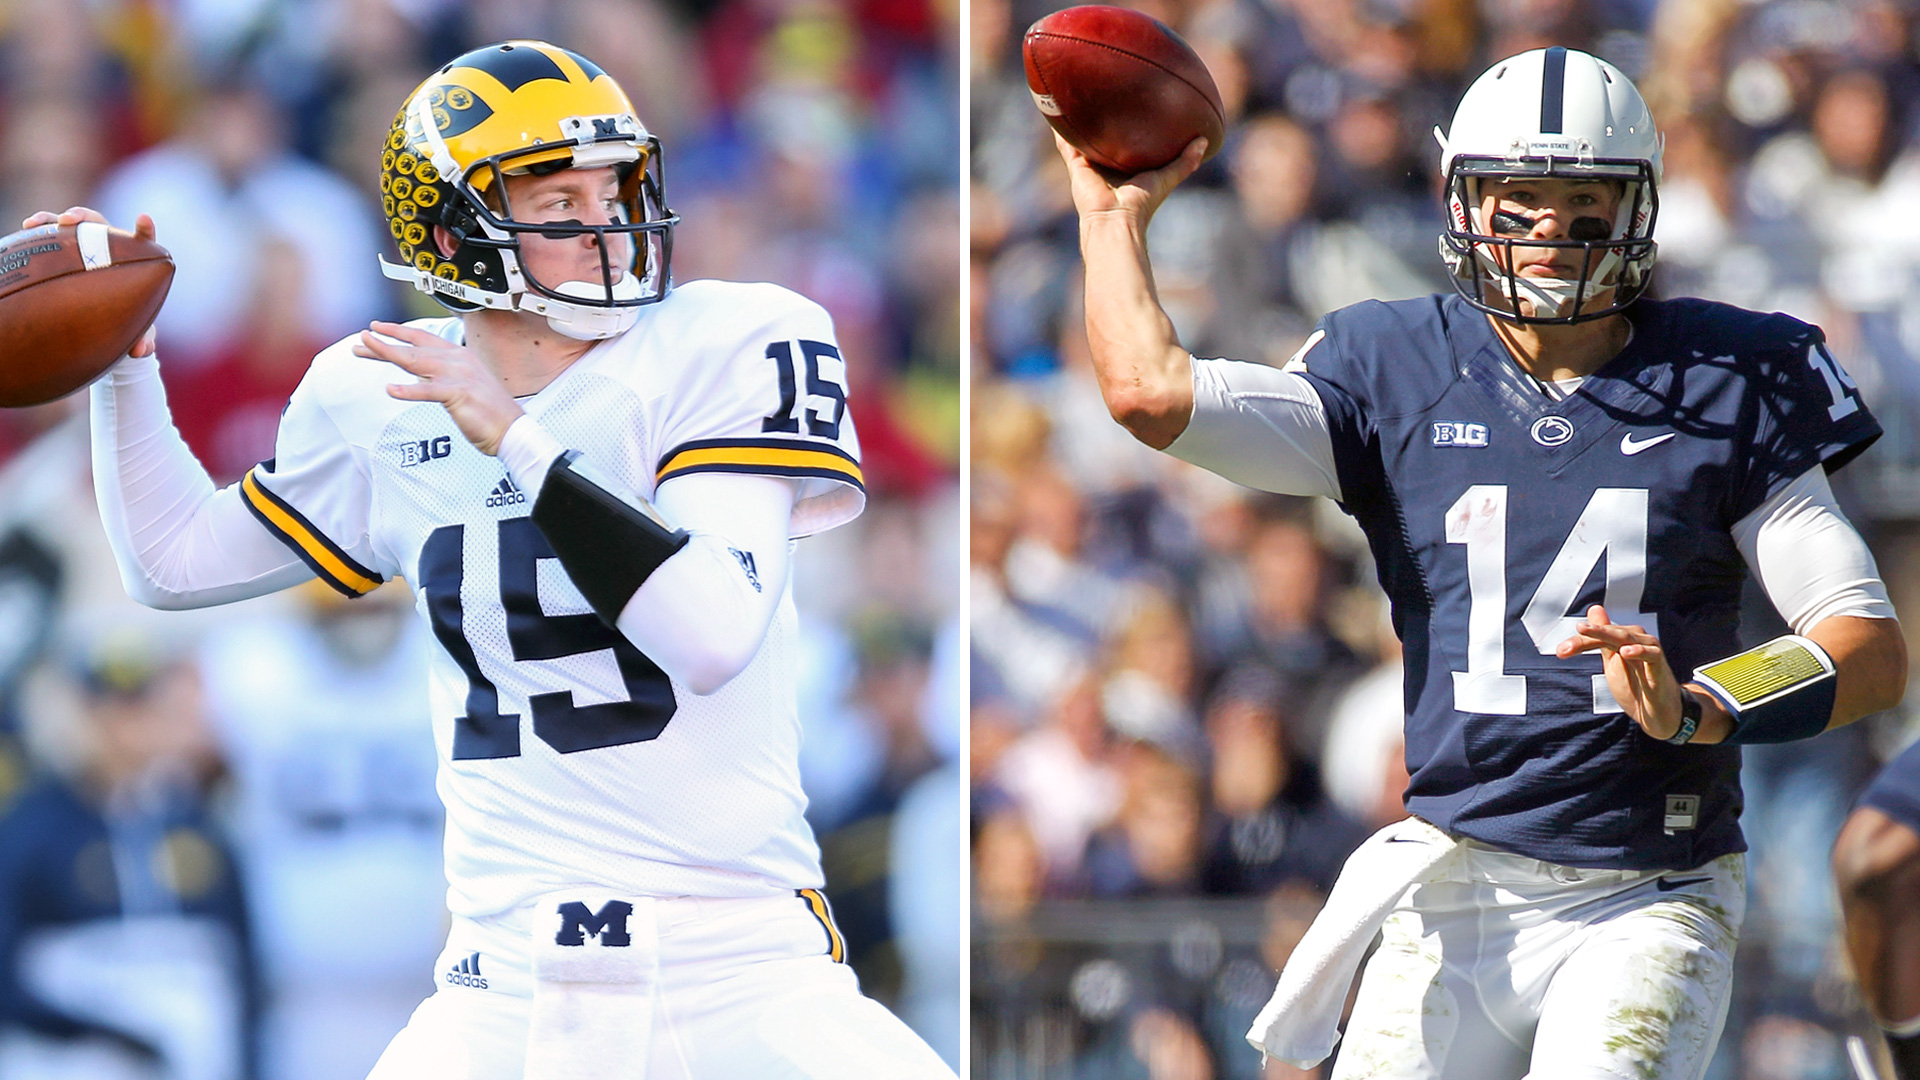 Michigan at Penn State betting lines and pick – Wolverines look to deliver Nittany Lions first home loss of season